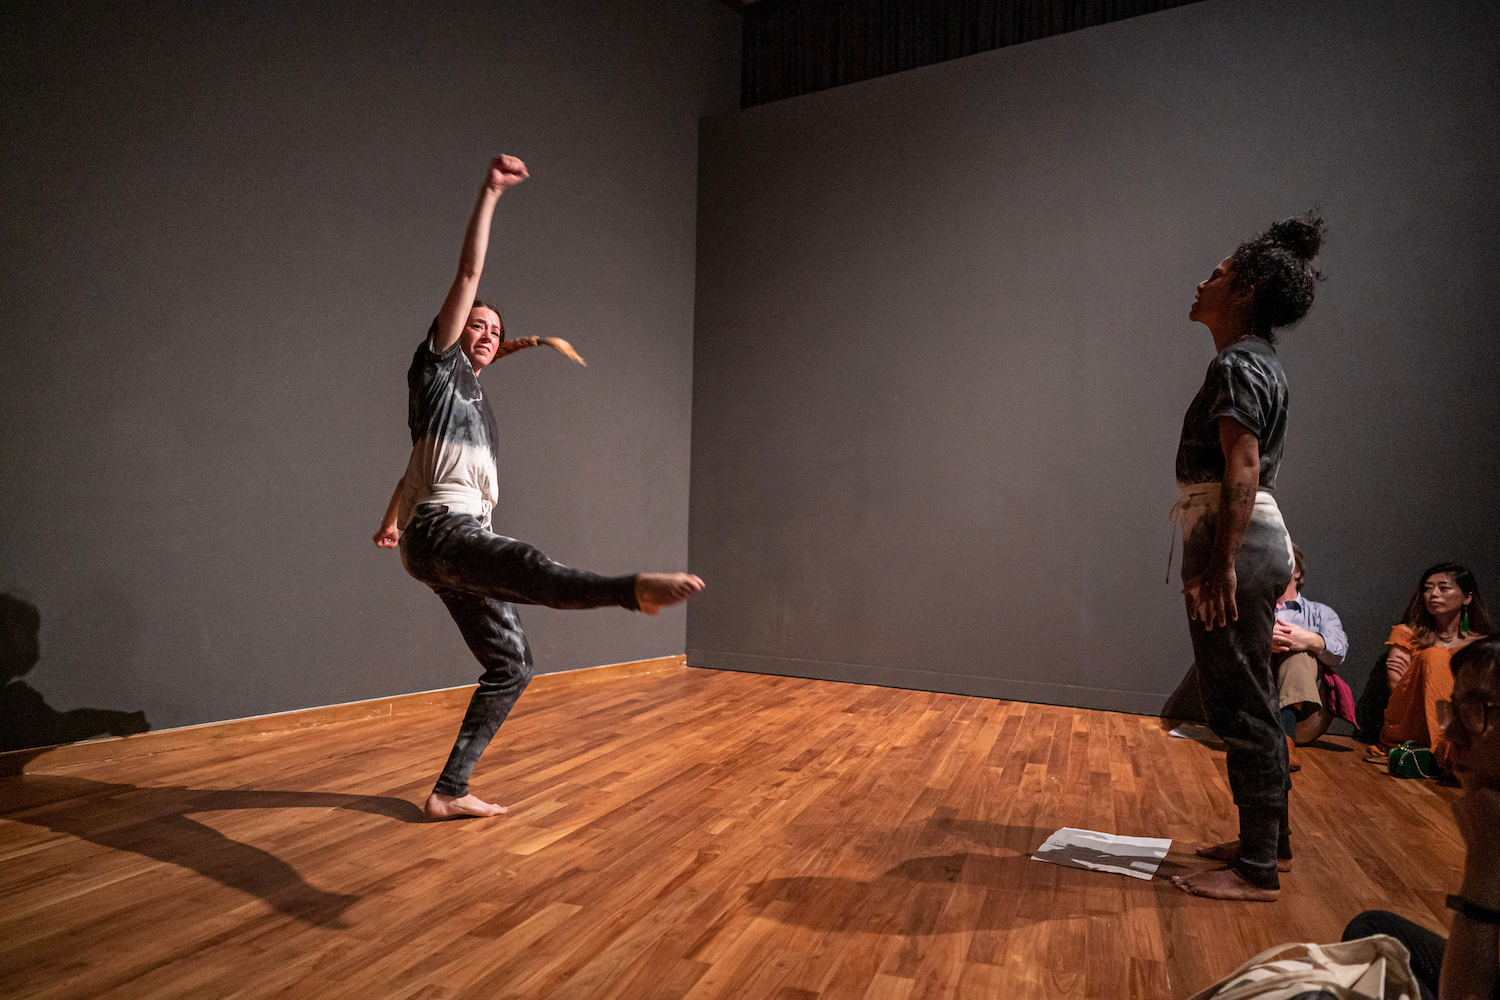 Nicole Bachmann, Personare, 2018/20. Performance. Performed by Patricia Langa and Deborah Emmanuel. ADM Gallery, SG as part of the Singapore Biennale 2019. Photography: Richard Chen.